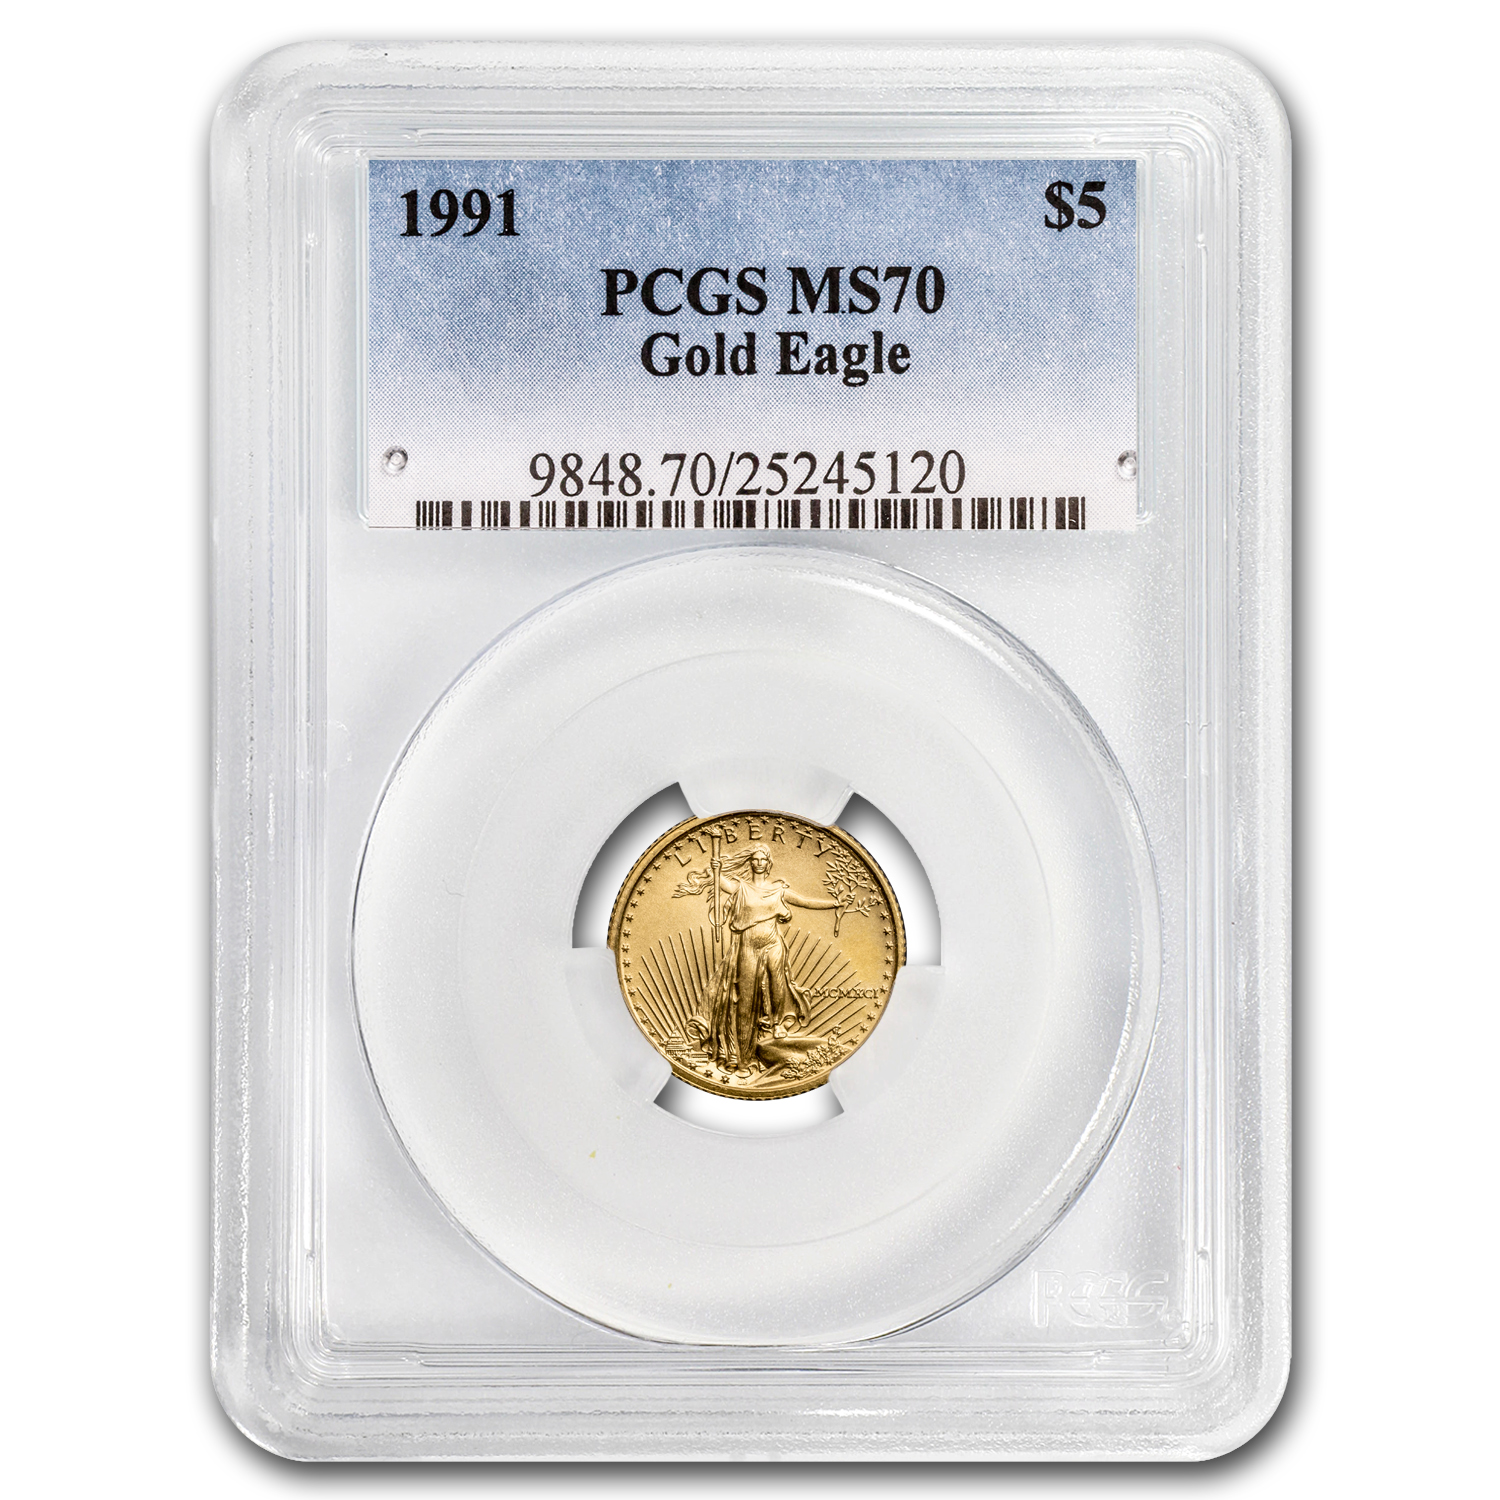 1991 1/10 oz Gold American Eagle MS-70 PCGS (Registry Set)